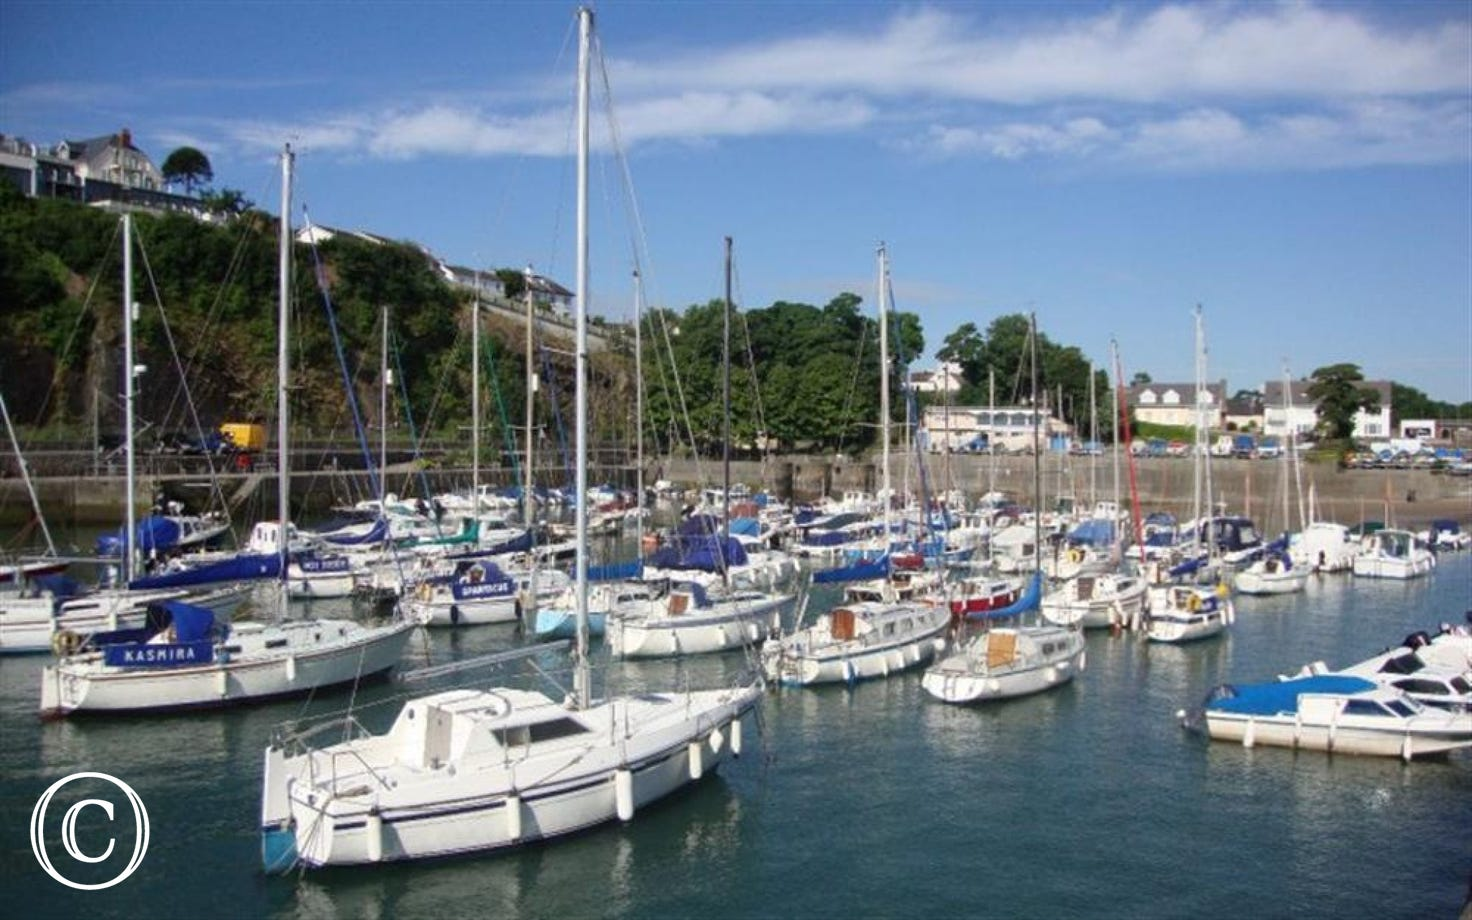 Boat trips leave the harbour-side in Saundersfoot in the Summer months.